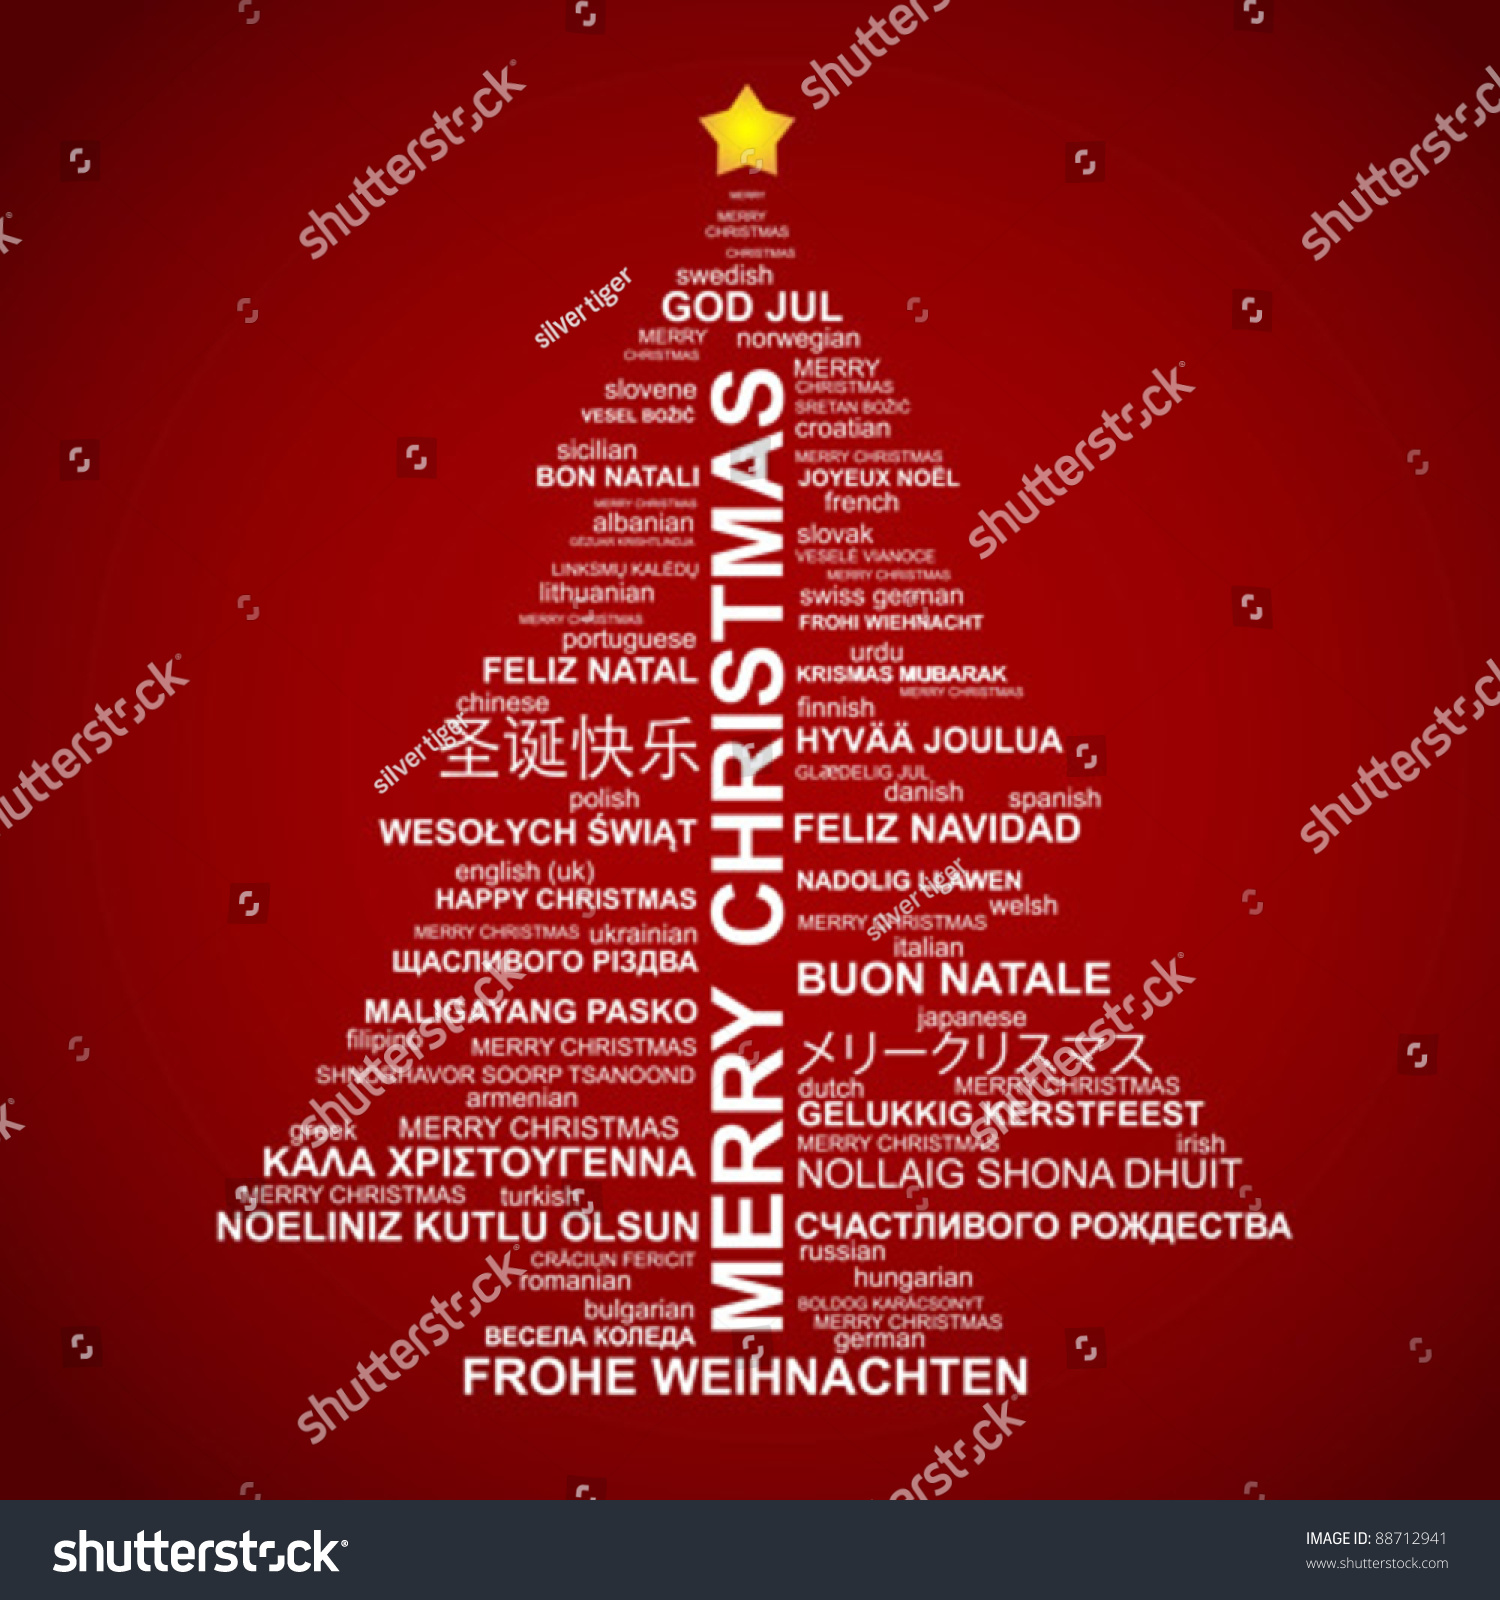 Merry Christmas All Languages Image Mag